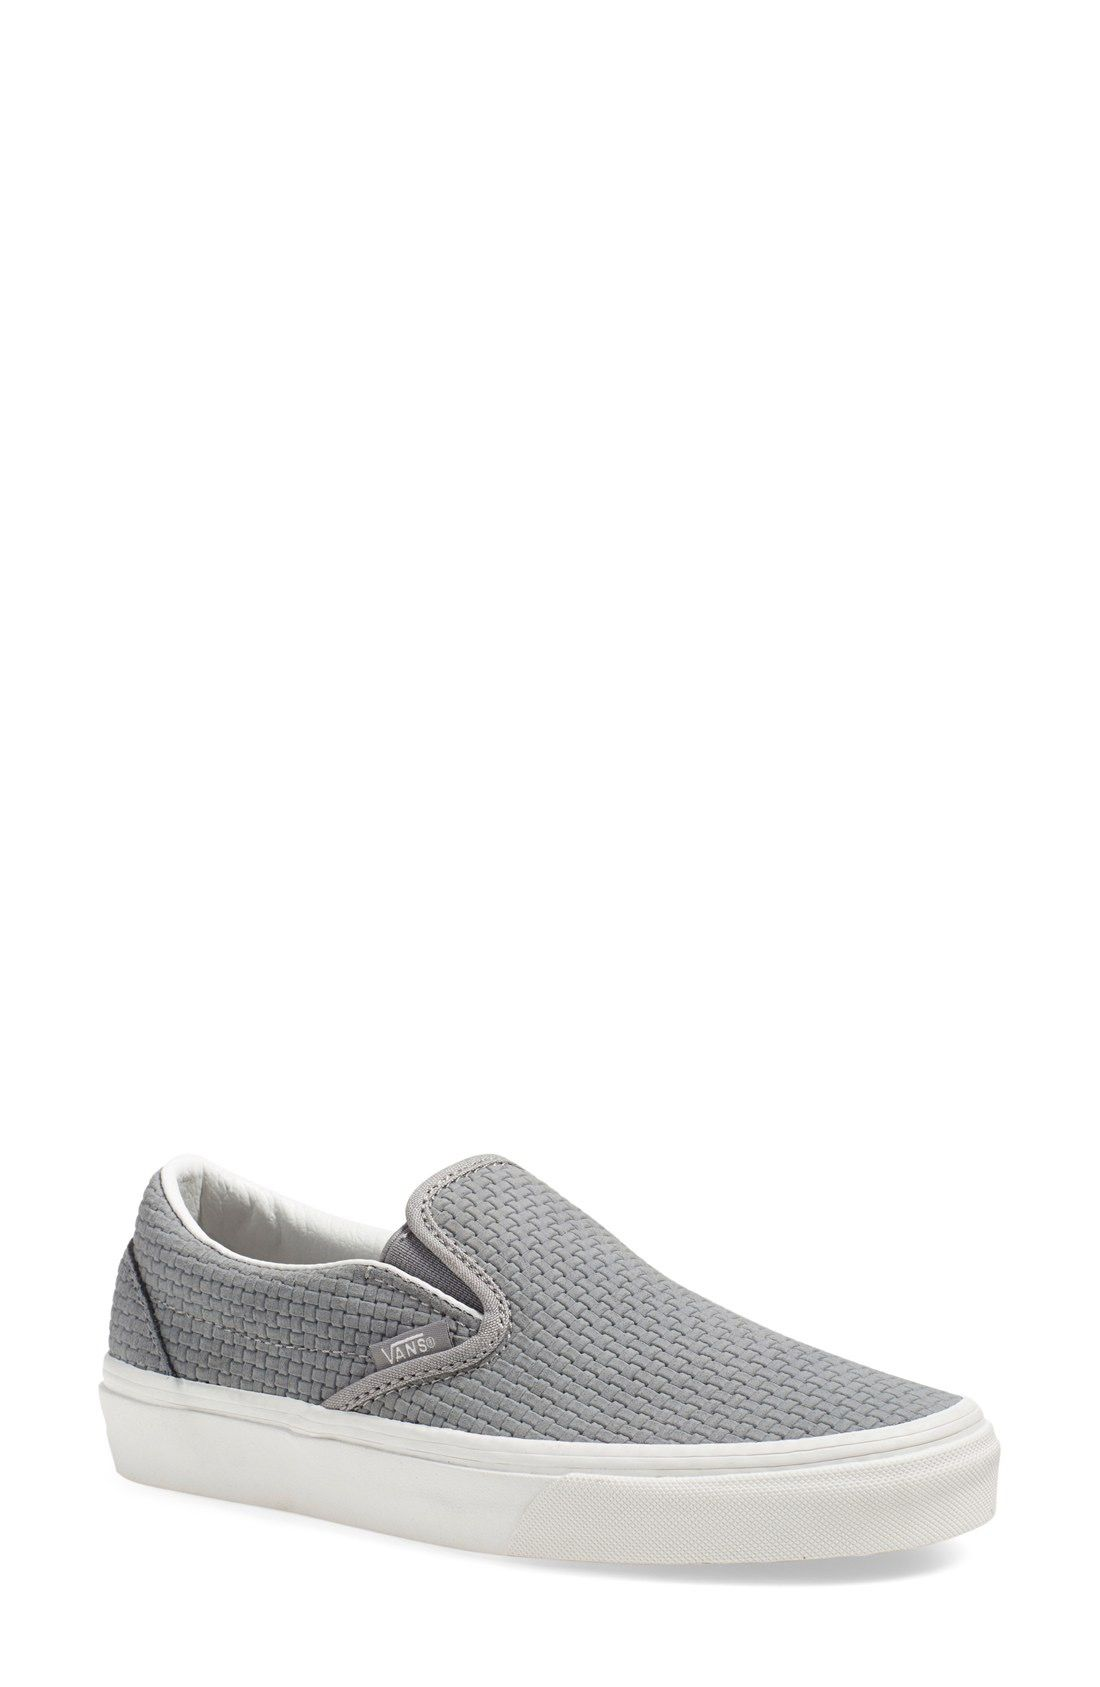 Vans Classic Slip-On Sneaker (Women) Grey Color: Wild Dove Suede